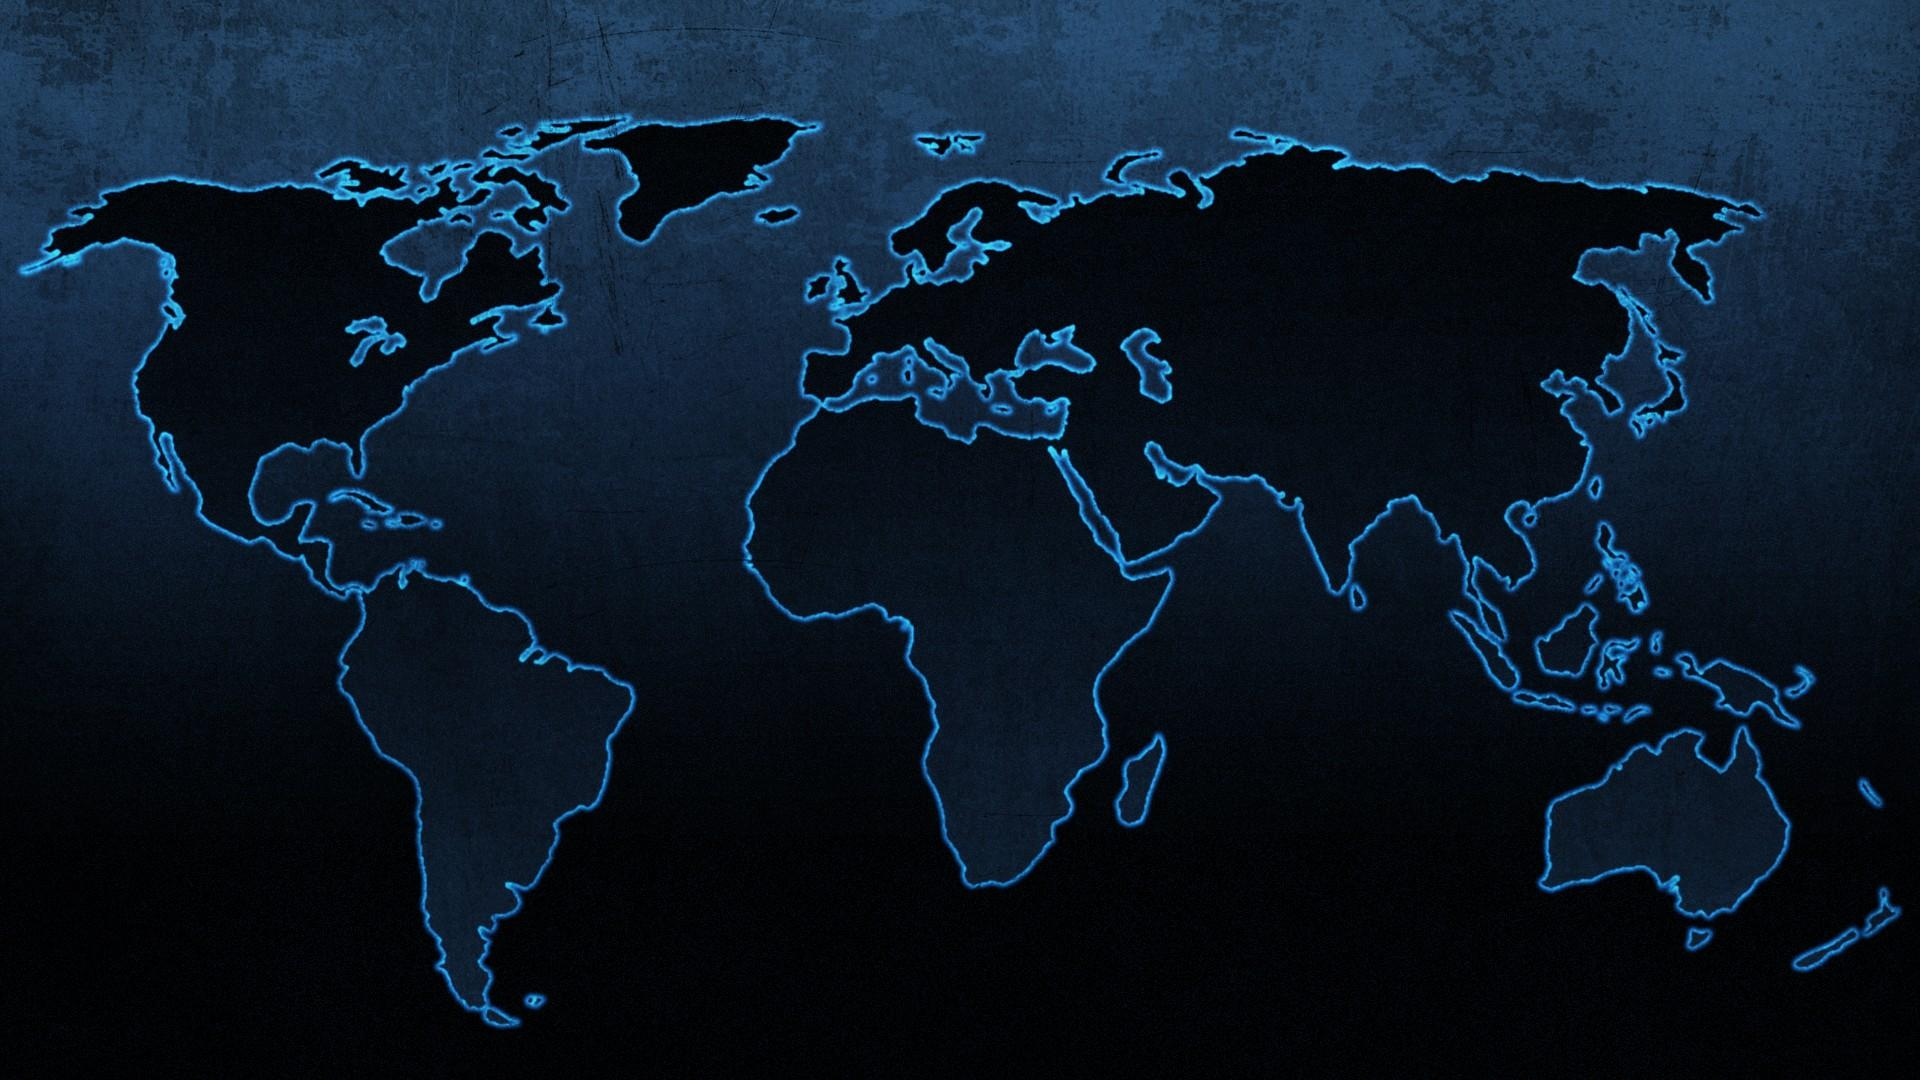 Blue continents maps world map wallpaper 79192 1920x1080